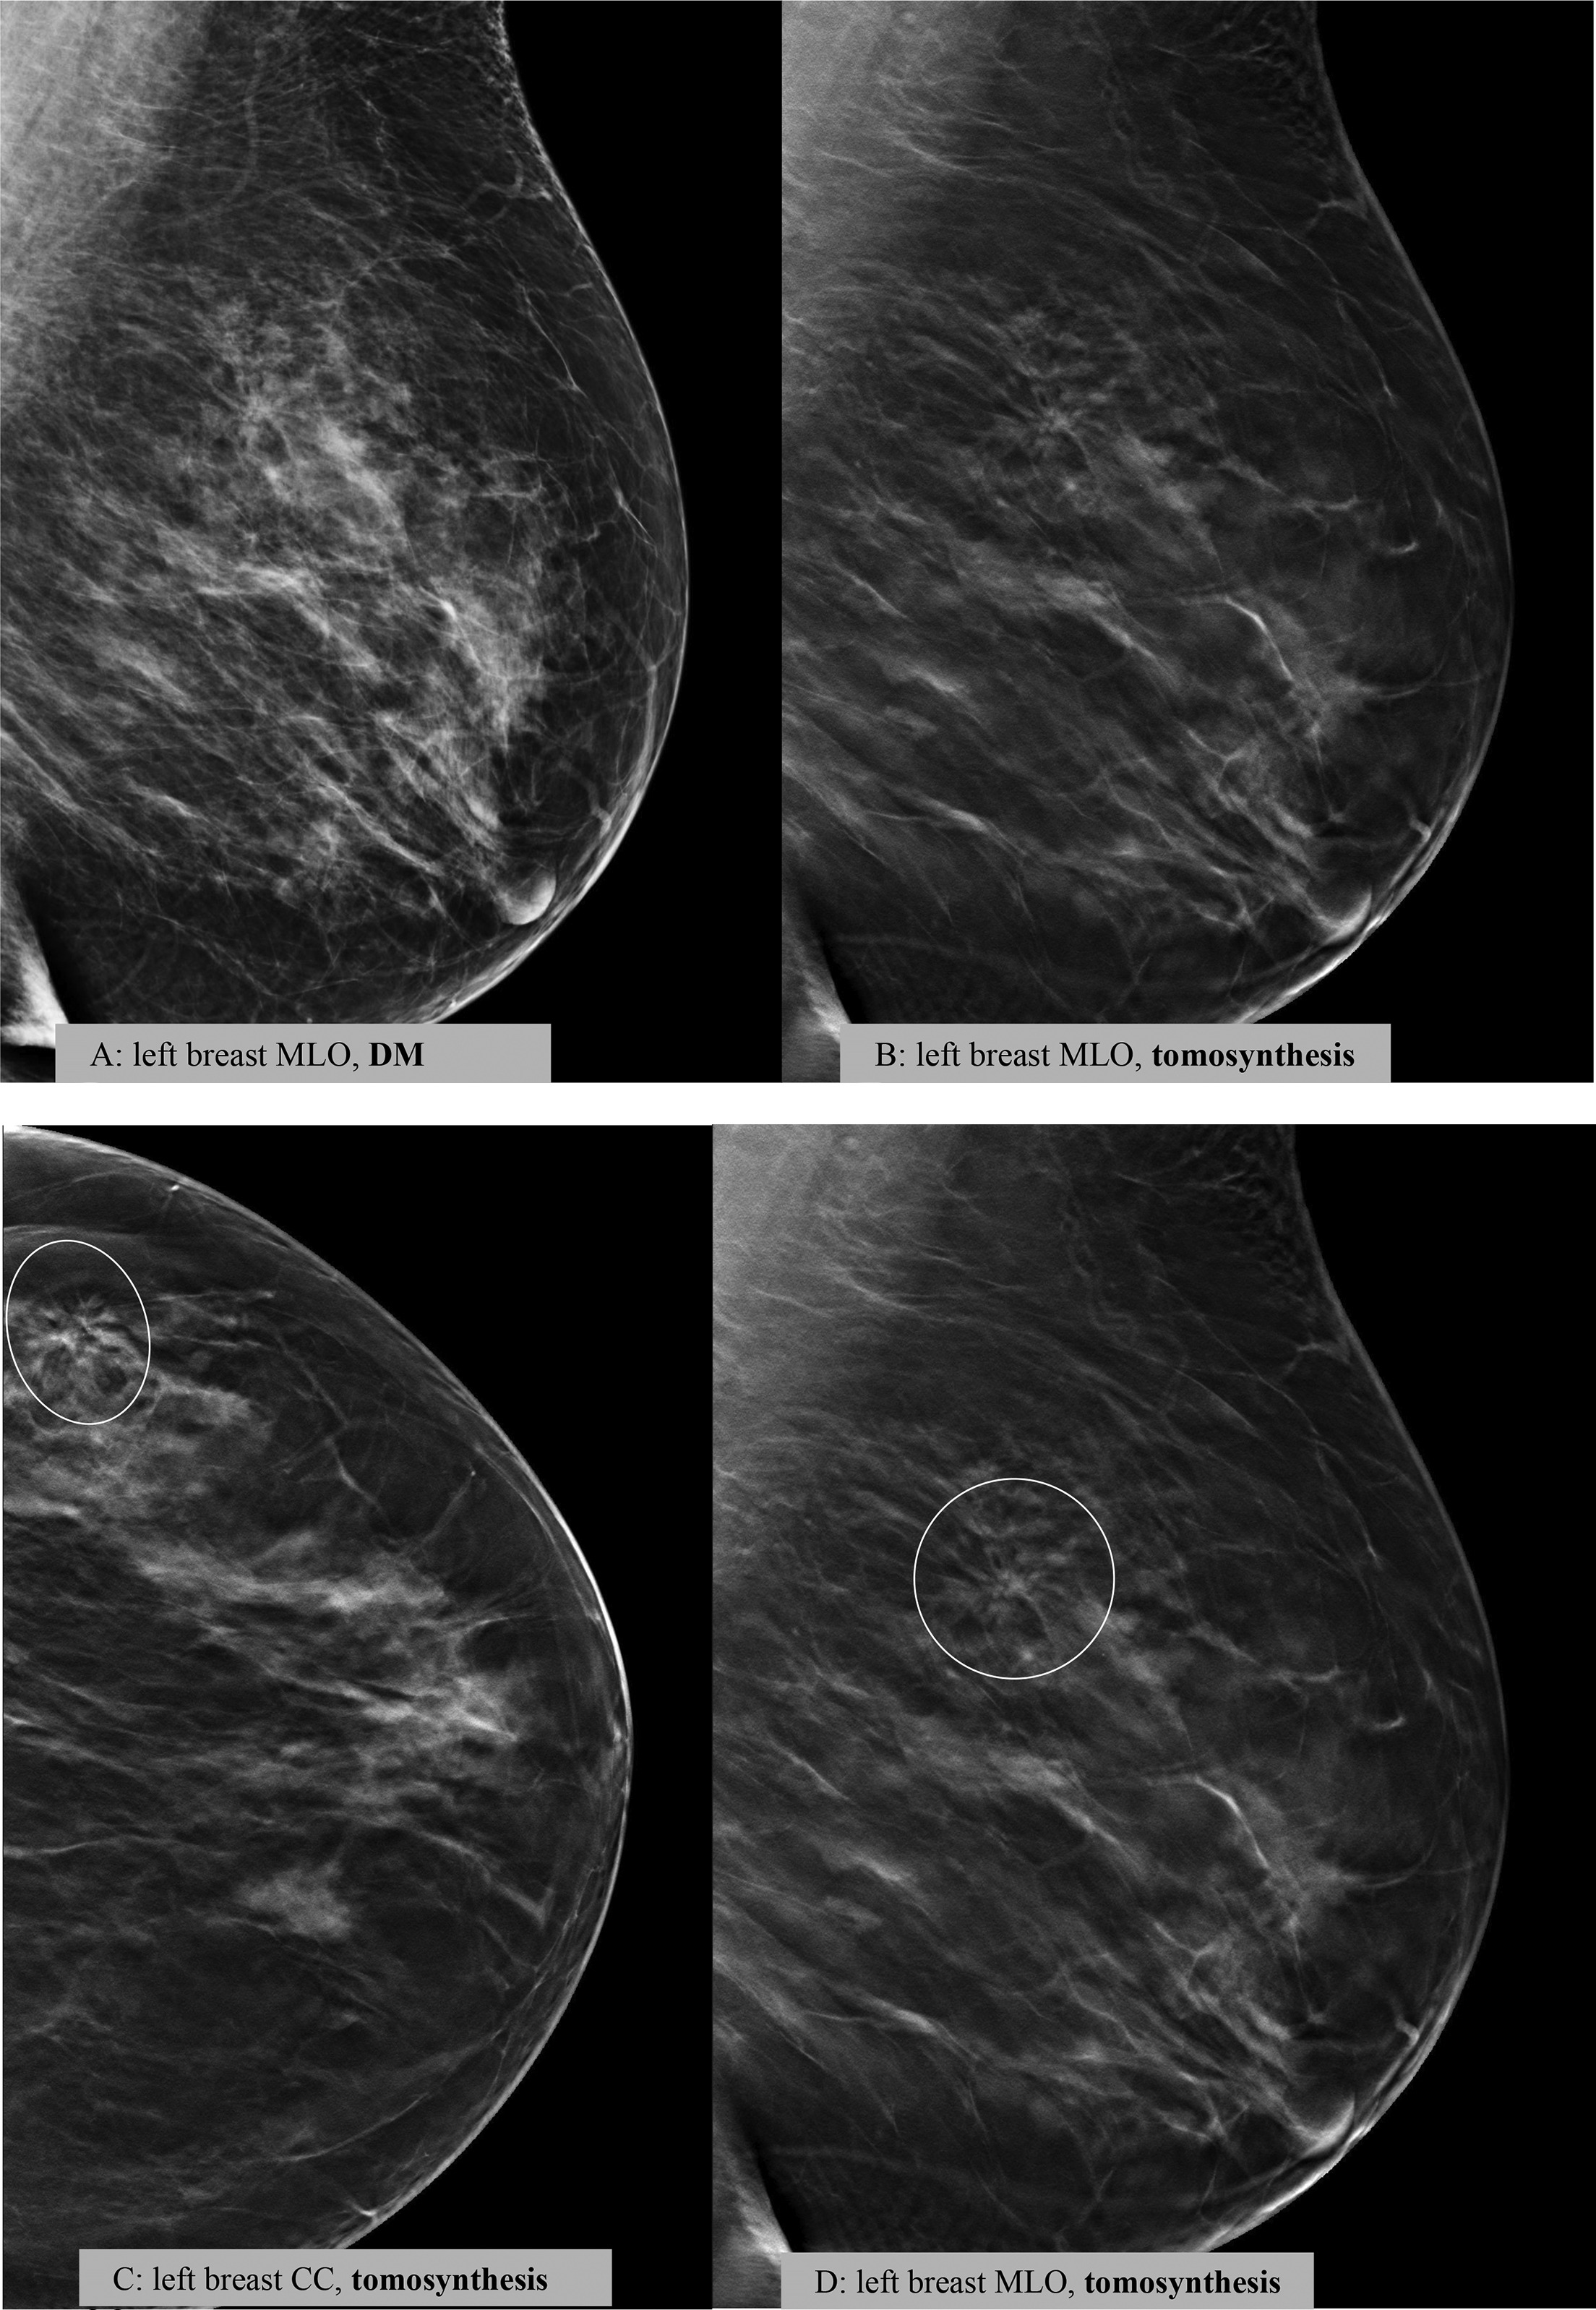 scatter radiation digital tomosynthesis breast Keywords: digital breast tomosynthesis, x-ray scatter, monte carlo simulation, image quality, breast cancer, mammography introduction digital breast tomosynthesis (dbt) imaging 1 is emerging as a potentially feasible replacement or adjunct to standard mammography for the screening and diagnosis of breast cancer.